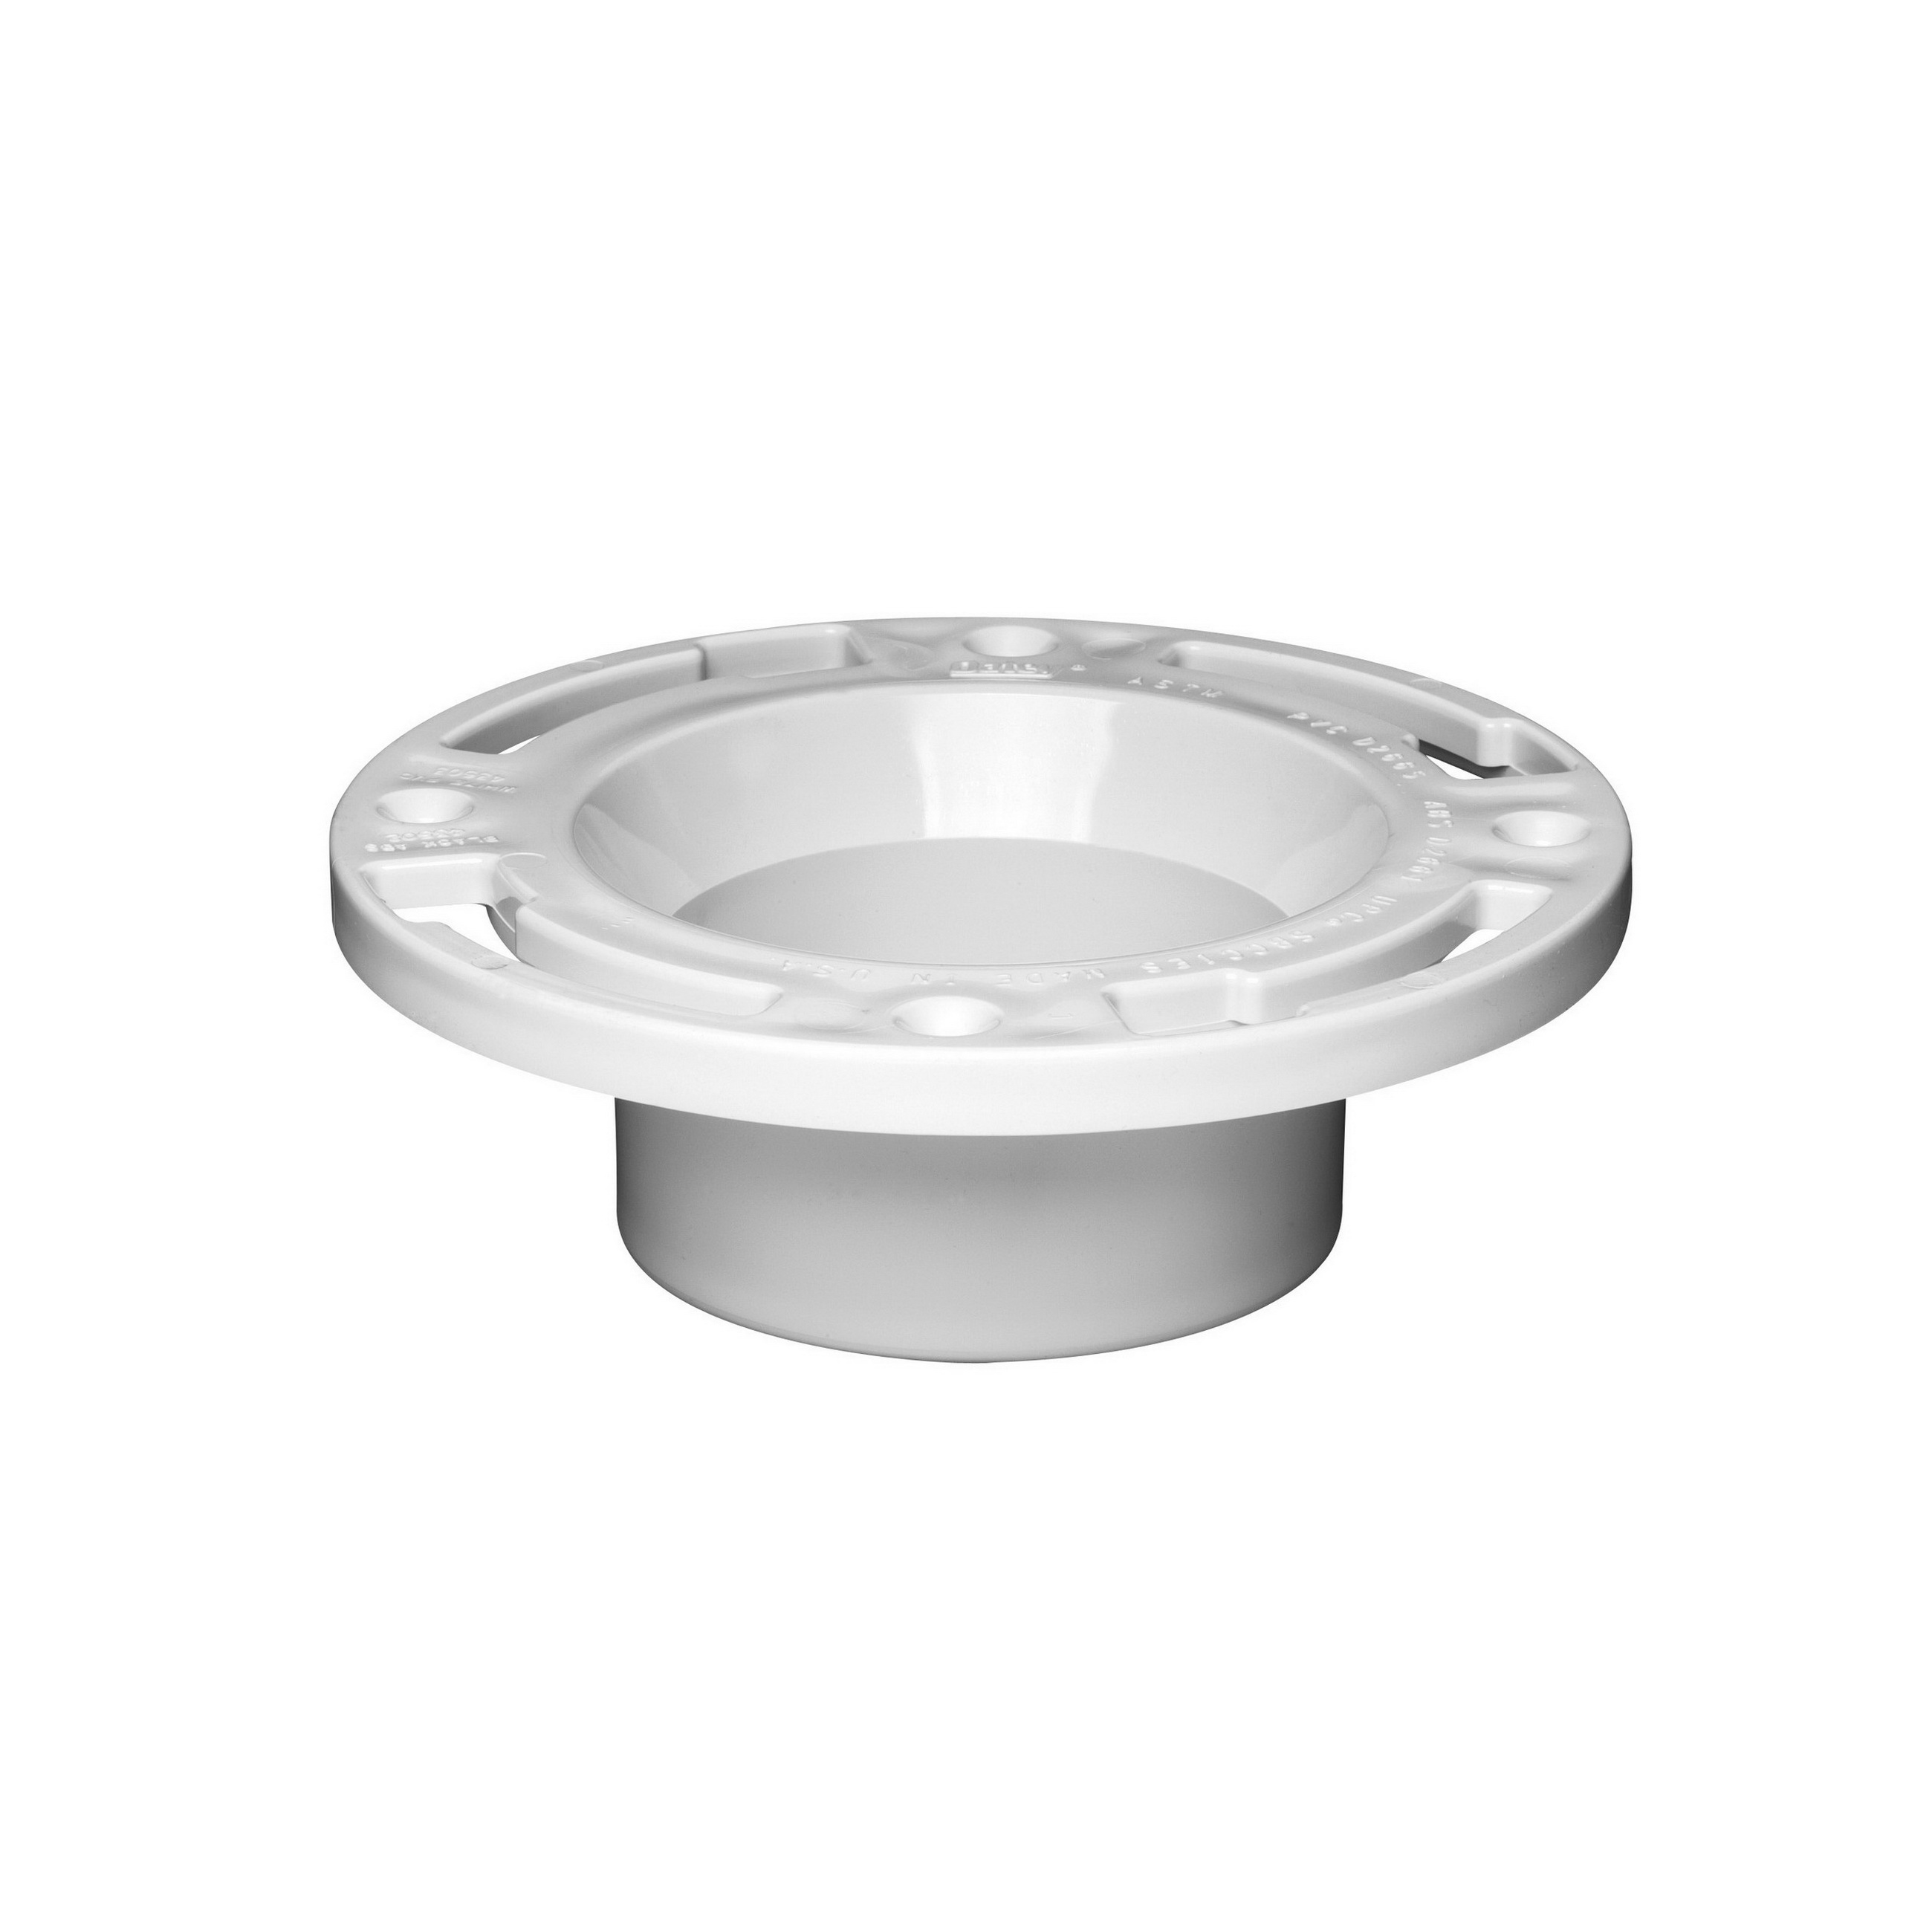 Oatey® 43503 White PVC SCH 40 Level Fit Closet Flange with Plastic Ring, 3 - 4 in